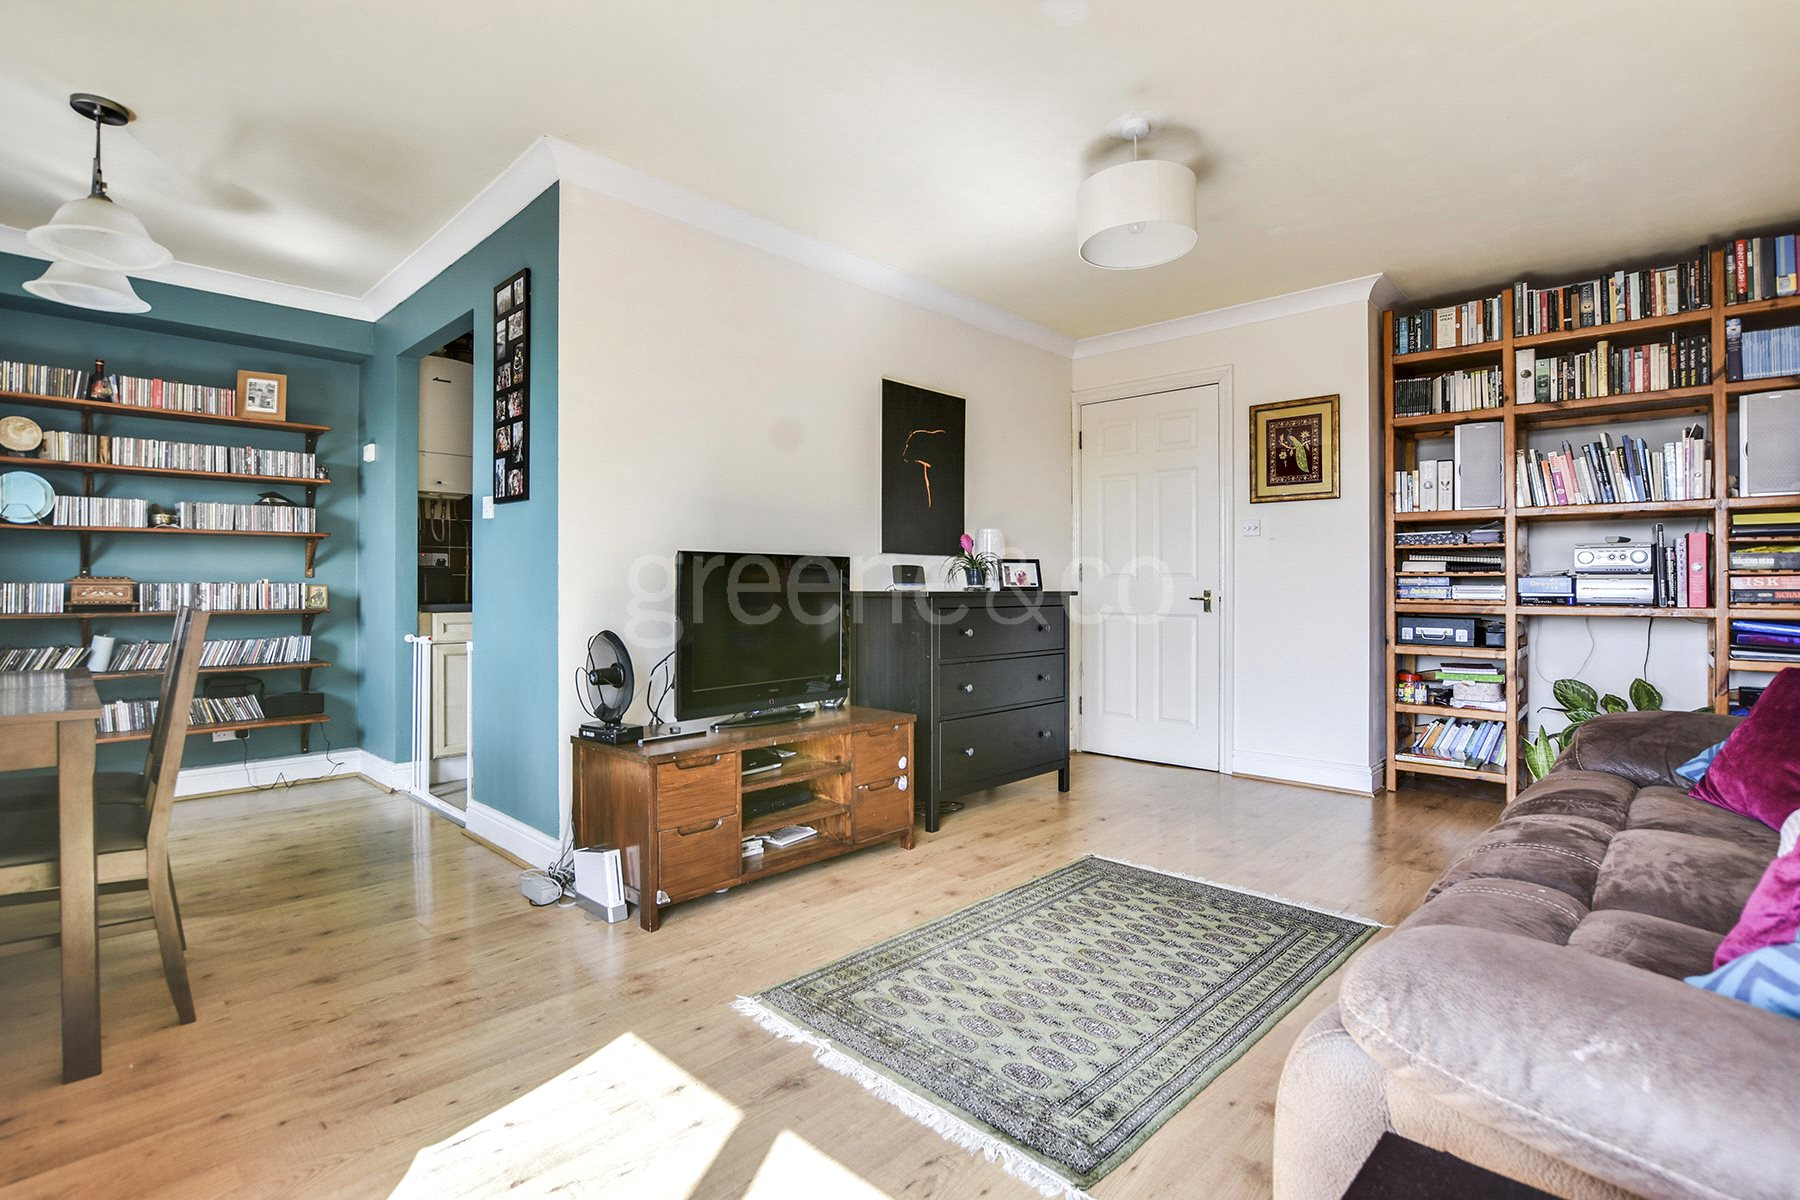 2 Bedrooms Flat for sale in Grand Union Close, Woodfield Road, Maida Vale, London, W9